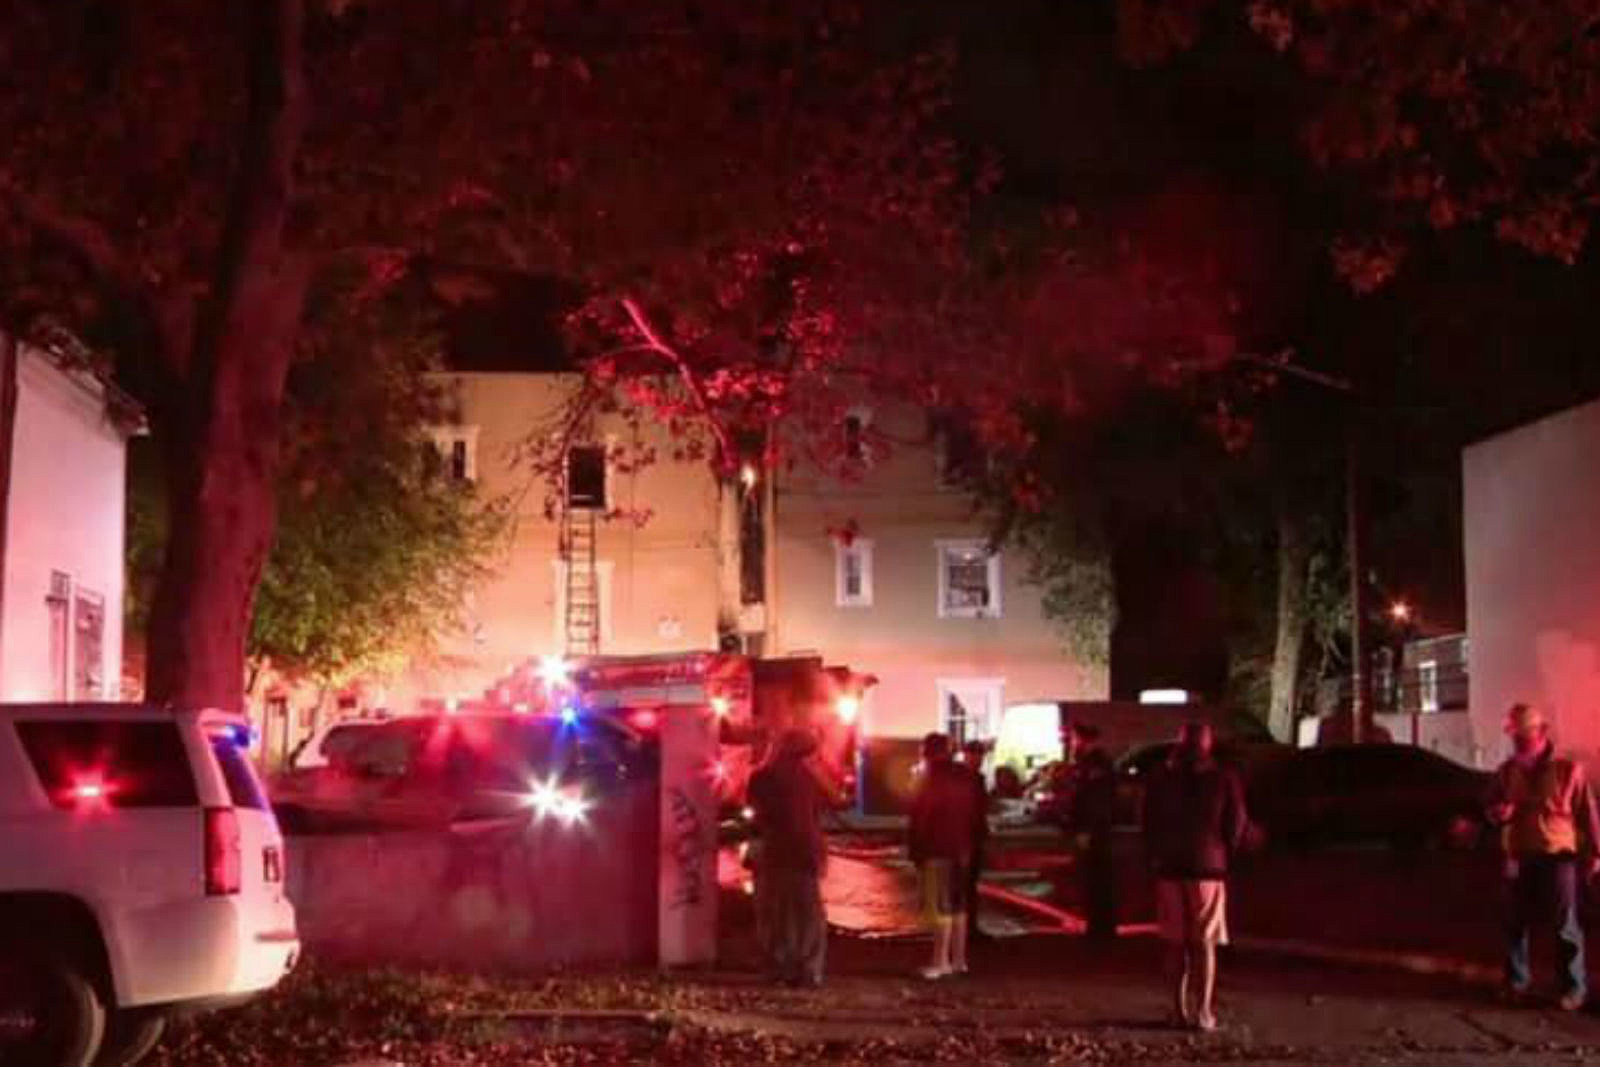 Homeless man set fire that killed two people, police say